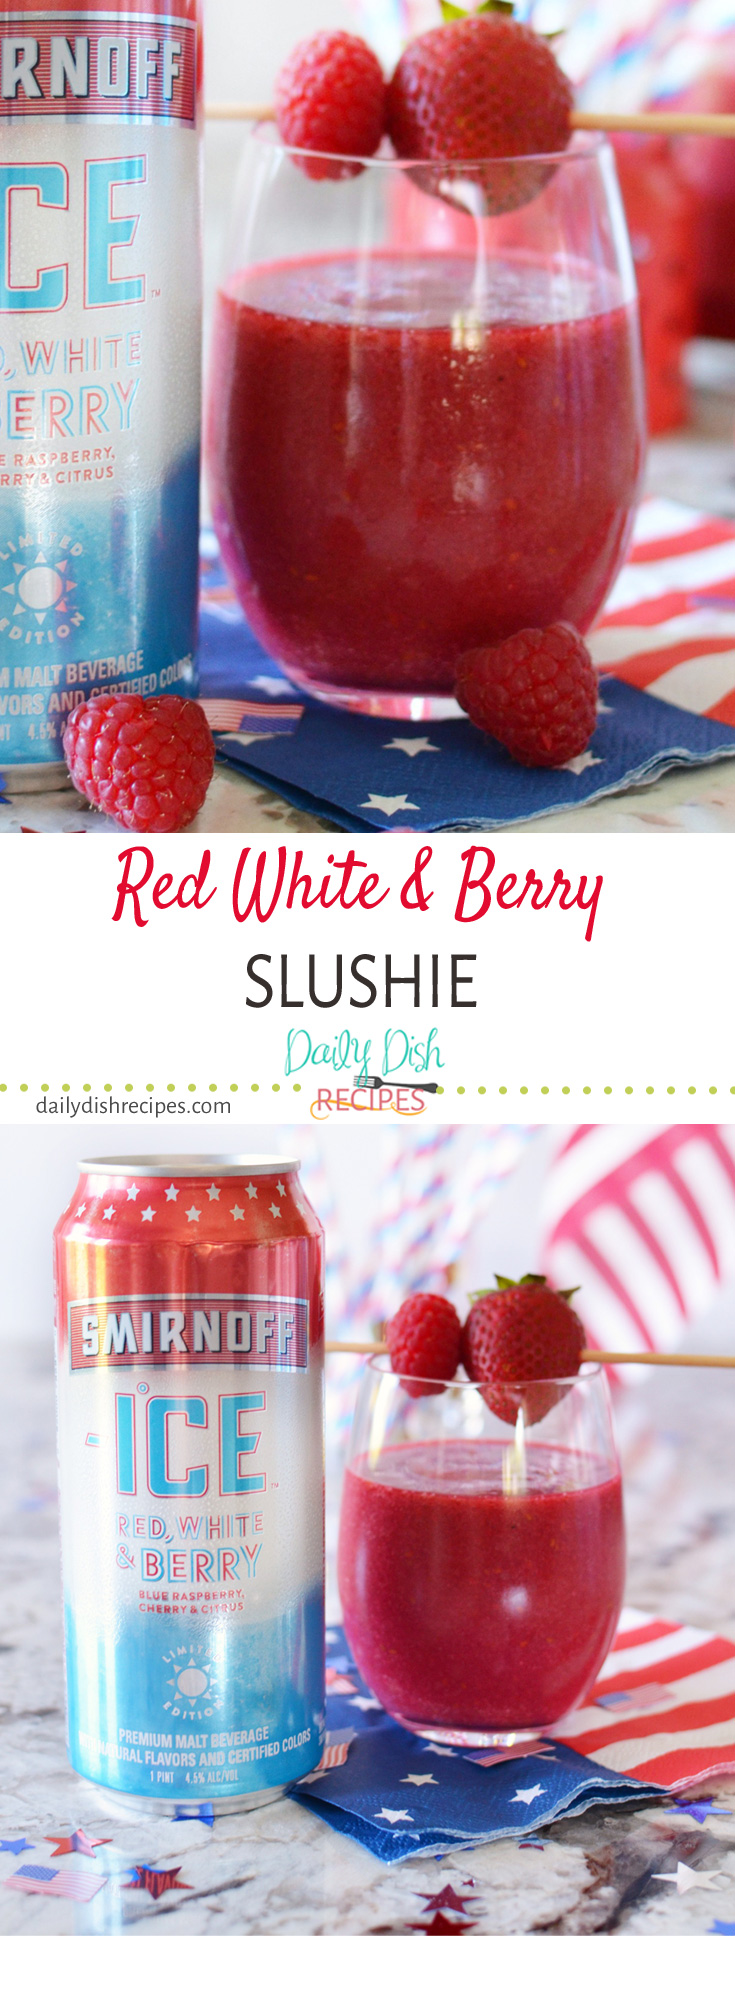 Red, White & Berry Slushie is a frozen flavored malt beverage with a blend of blue raspberry, cherry and citrus flavors, makes this a perfectly refreshing and cooling drink to enjoy anytime this summer.